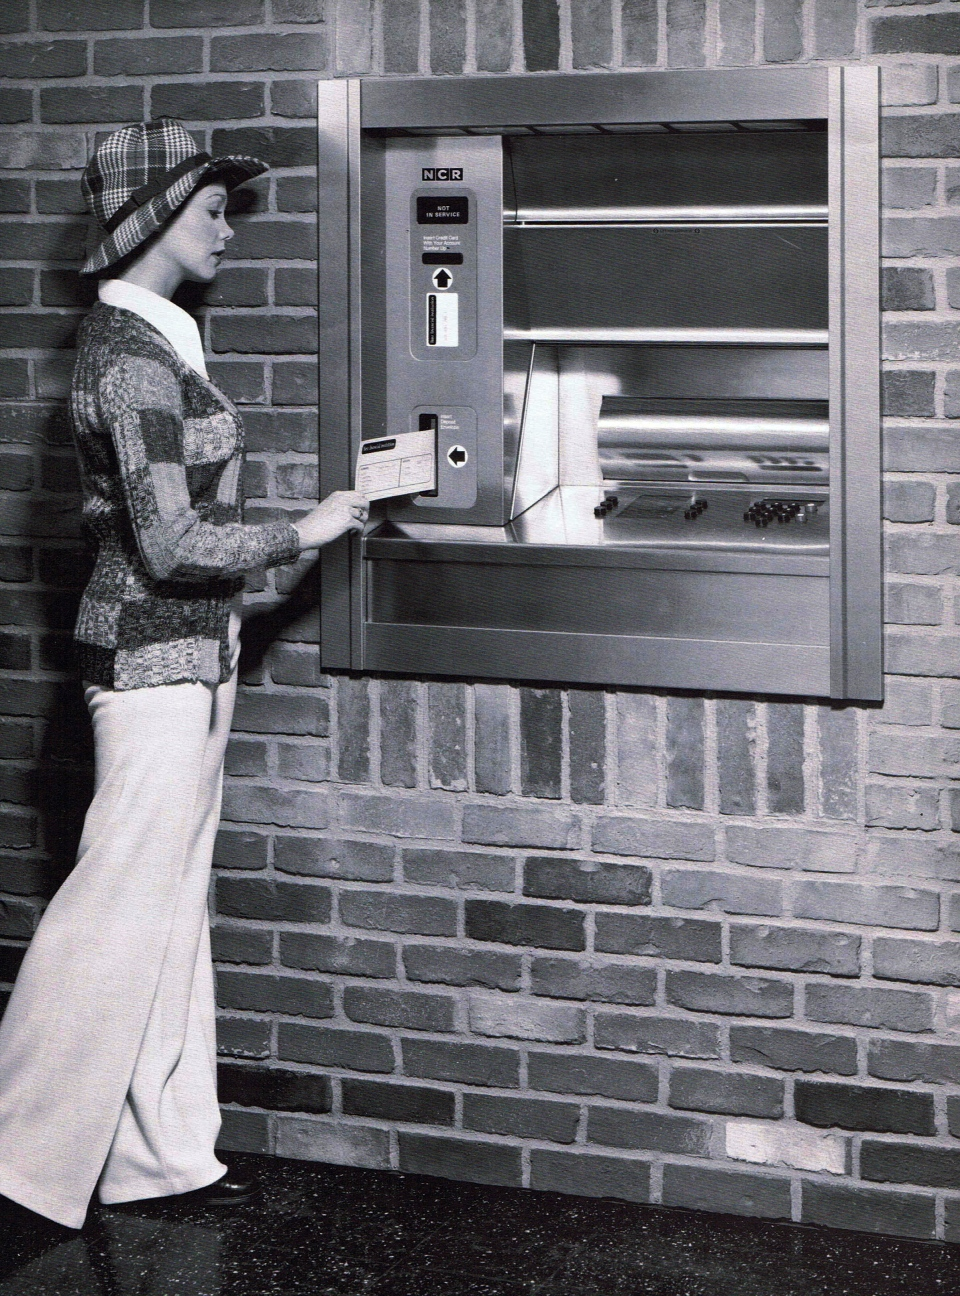 In this photo provided by NCR of an image from a 1974 company announcement, a woman uses an automated teller machine. (Courtesy of NCR via AP)